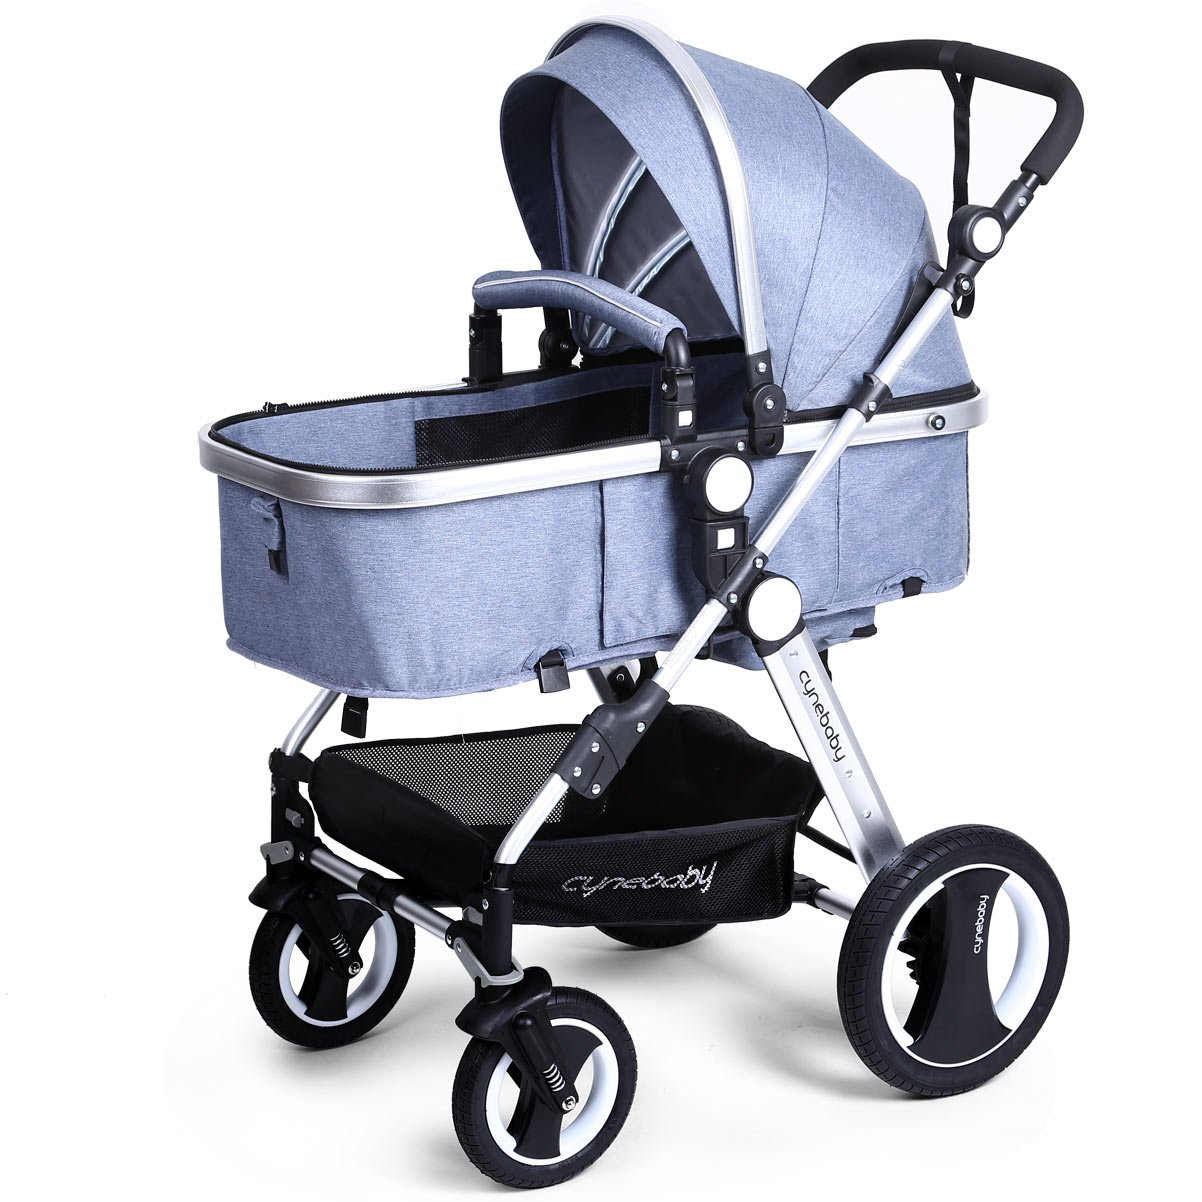 Infant Baby Stroller Toddler Carriage - Cynebaby Folding Pram Bassinet Strollers with Cup Holder (blue) by cynebaby (Image #2)